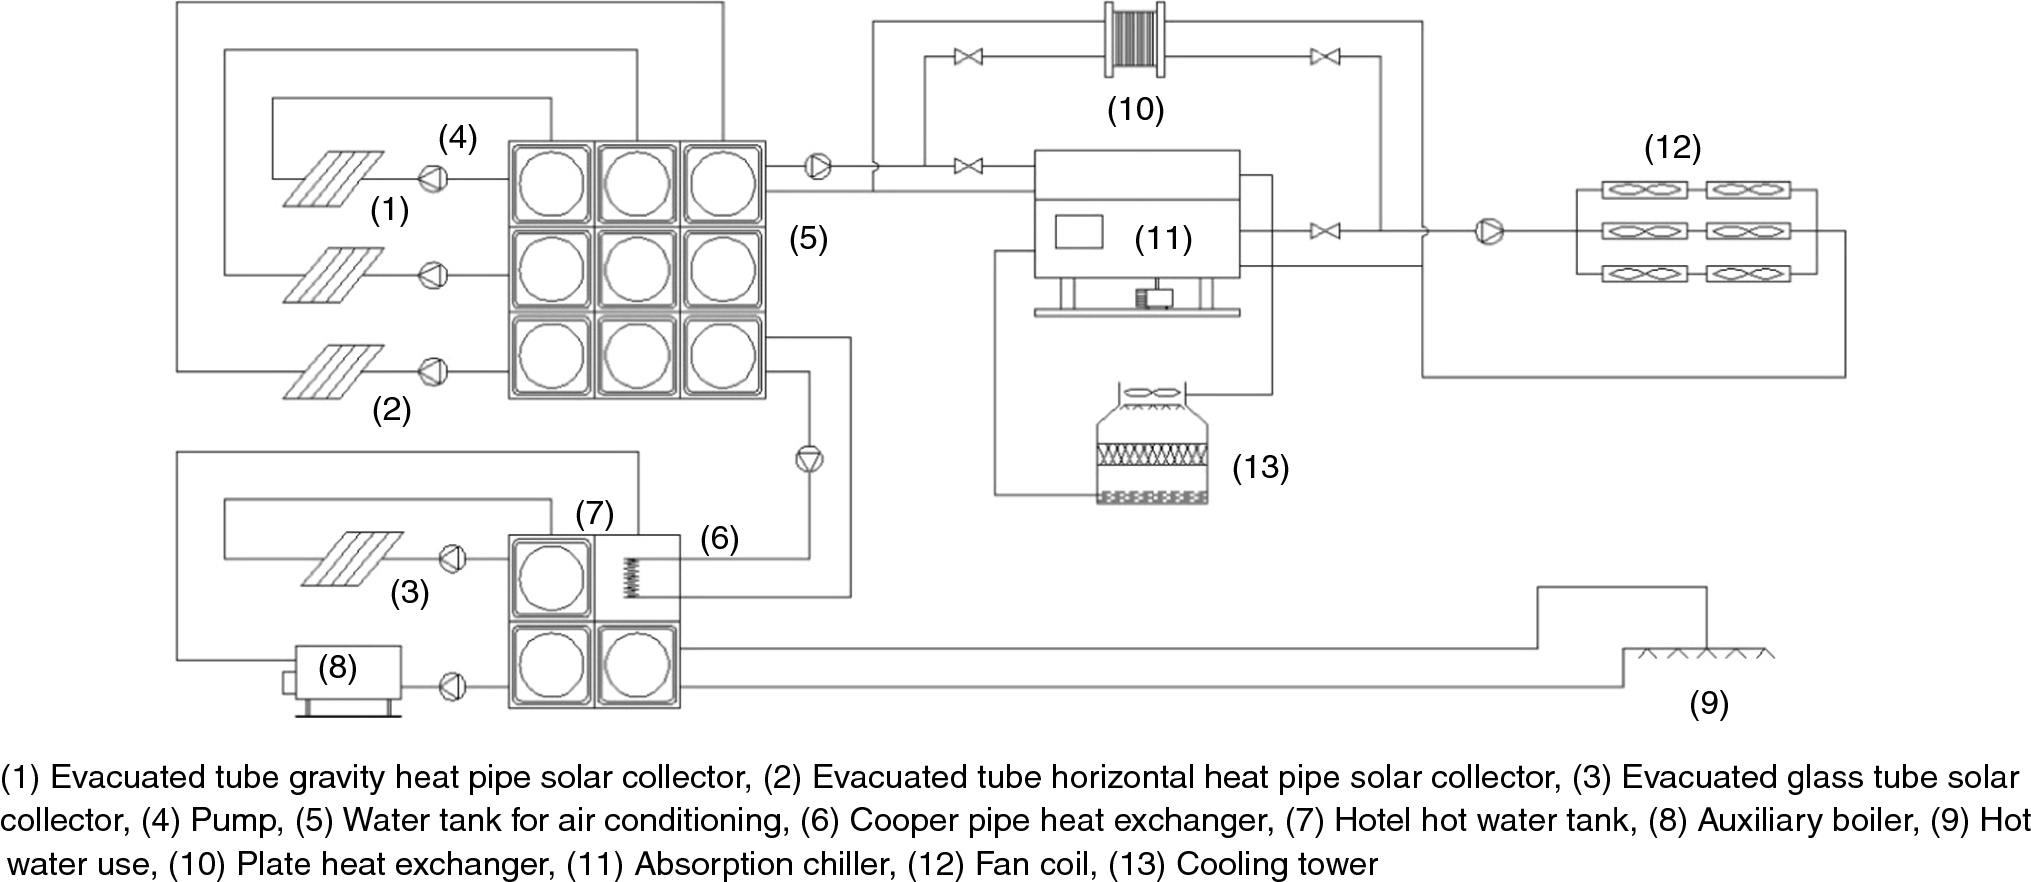 A Review Of Solar Absorption Cooling Systems Combined With Various Piping Layout Heat Exchanger Open Image In New Window